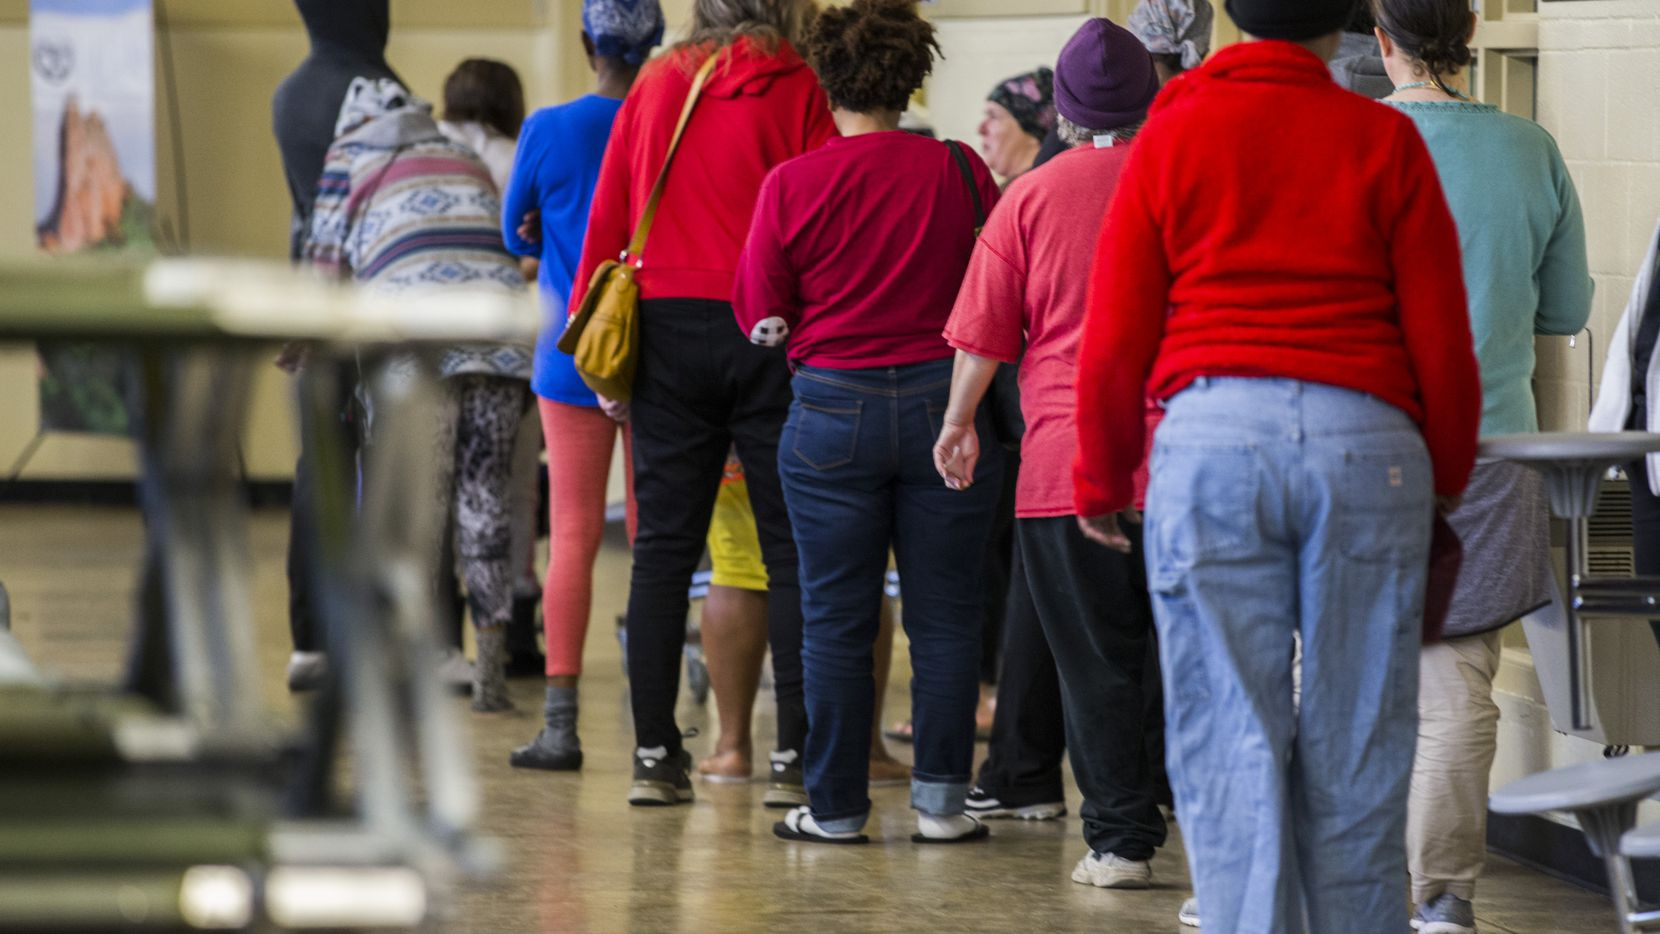 People waited in line for mail at Austin Street Center on Thursday, Feb. 6, 2020 in Dallas. The facility provides shelter and services for the homeless.